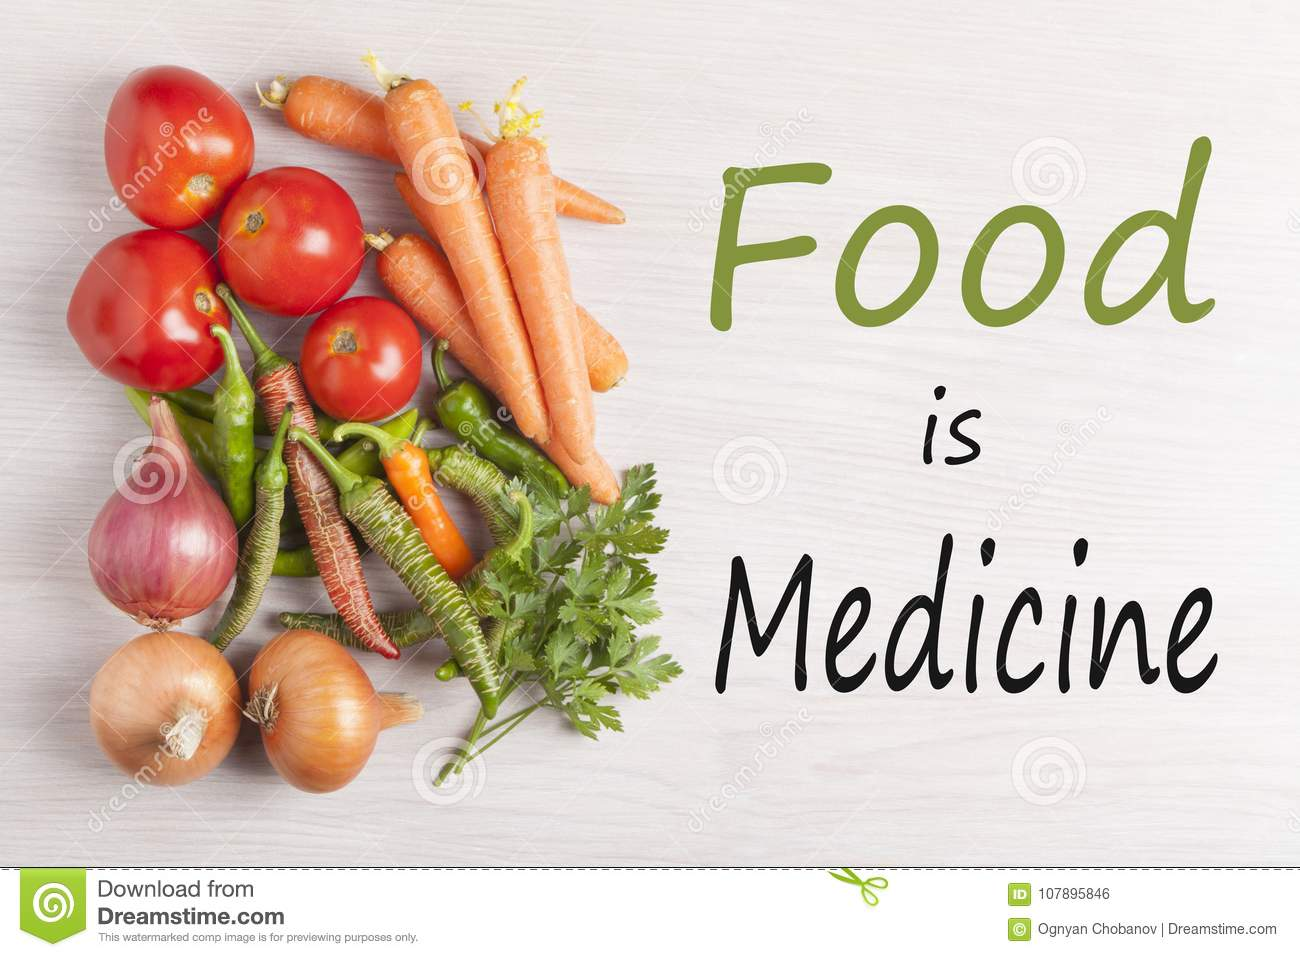 Food is Medicine text with assorted vegetables